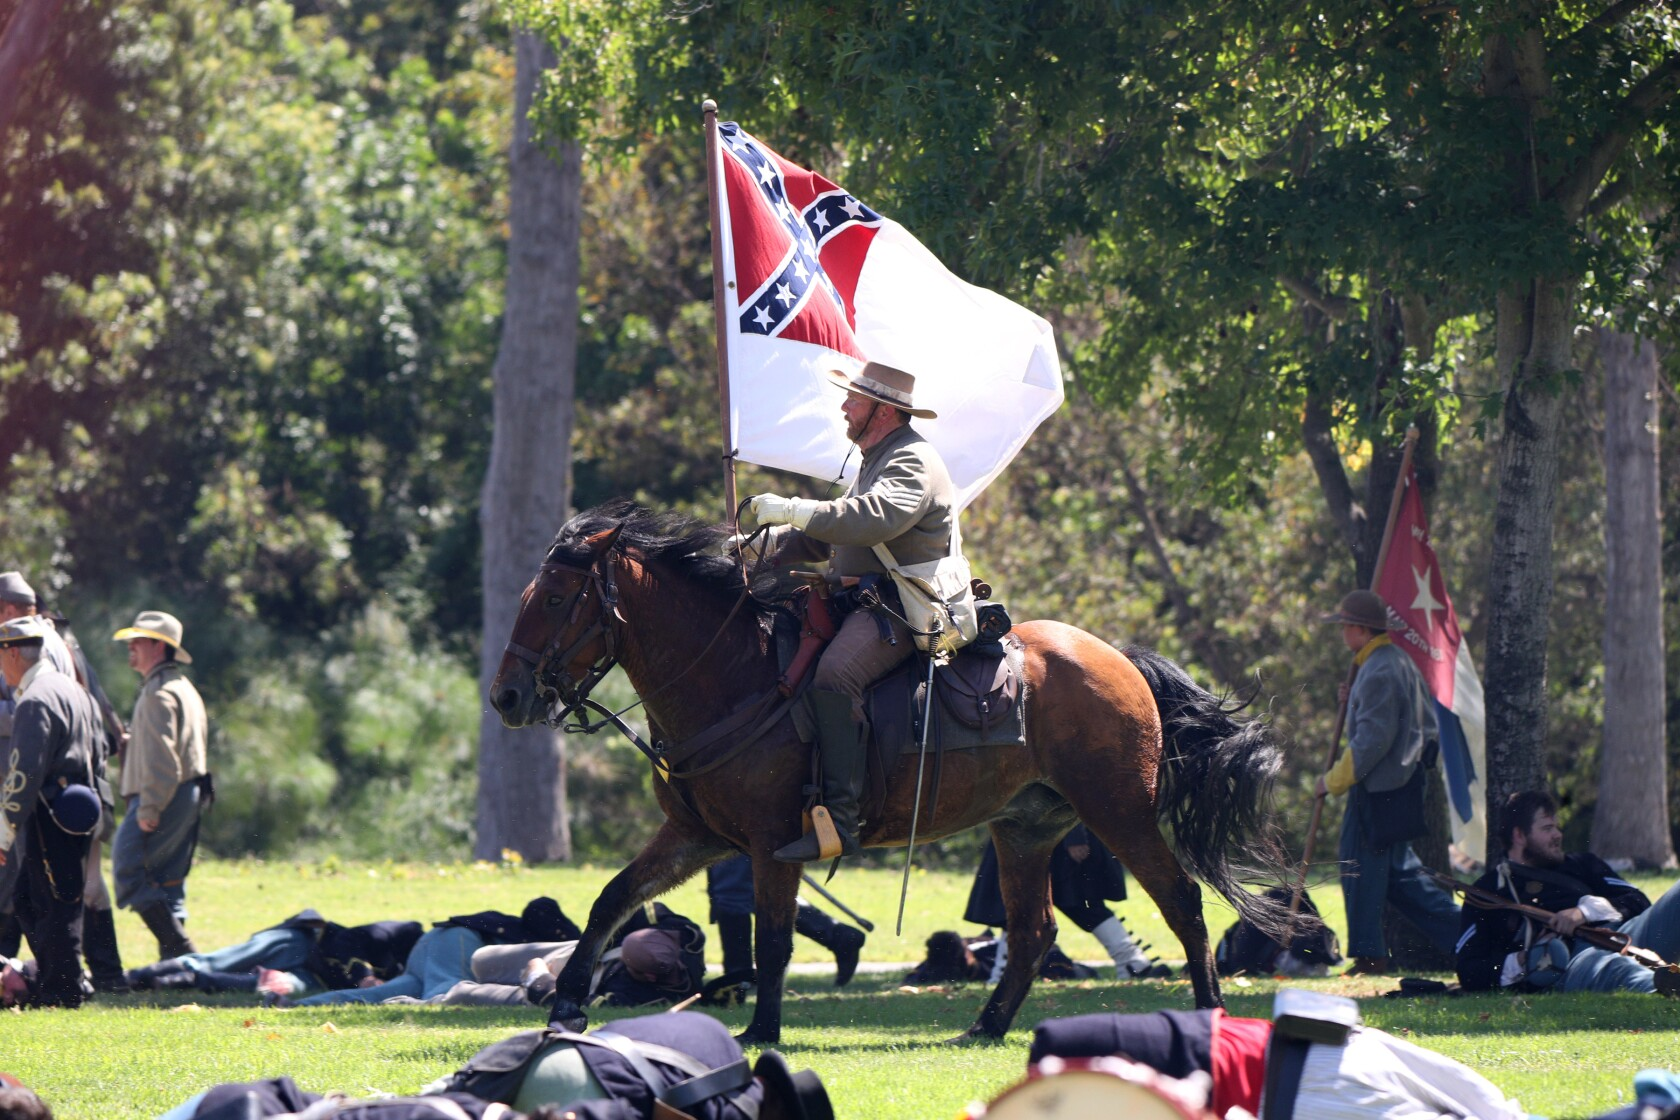 Civil War reenactors bring history to life in Huntington